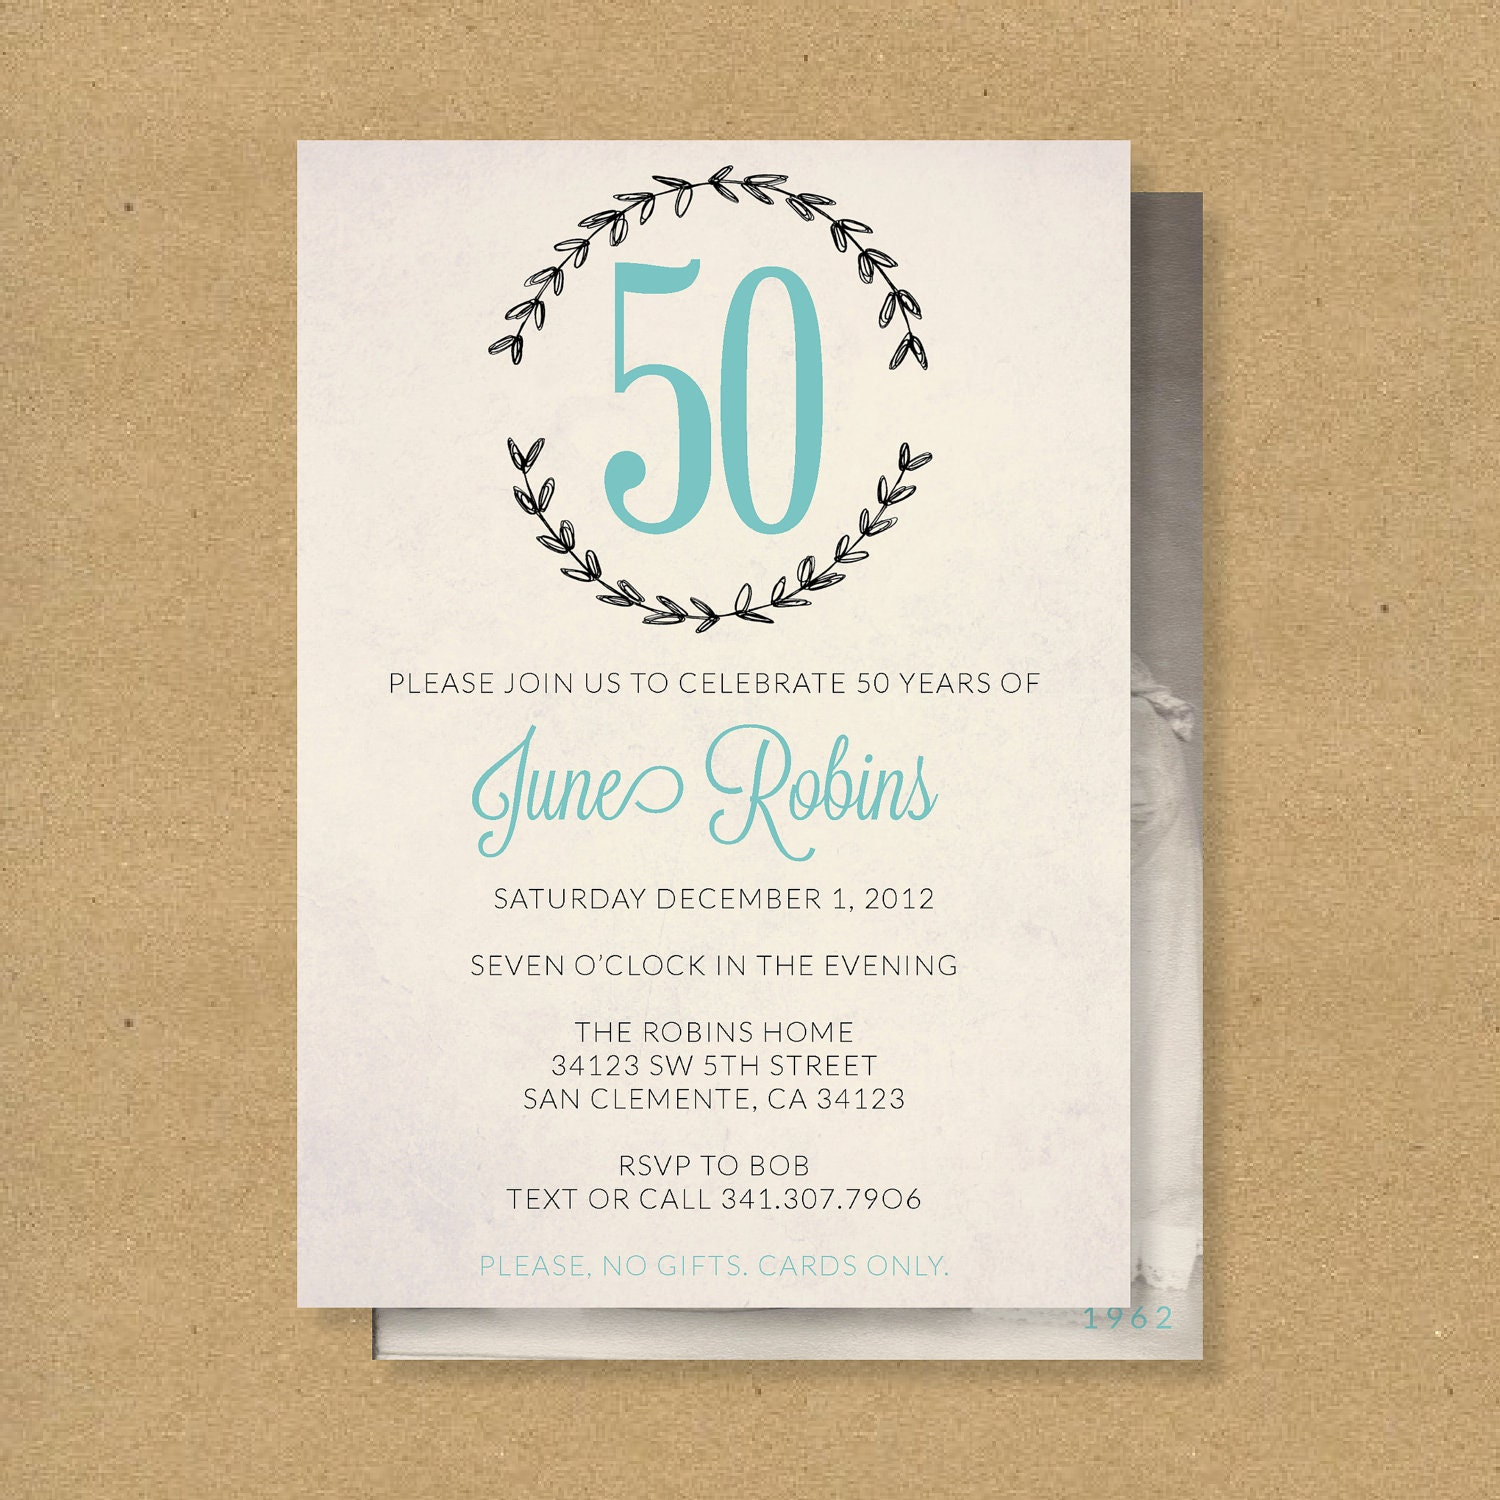 Th Birthday Invitations Free Printable Pasoevolistco - Party invitation template: free 40th birthday party invitation templates